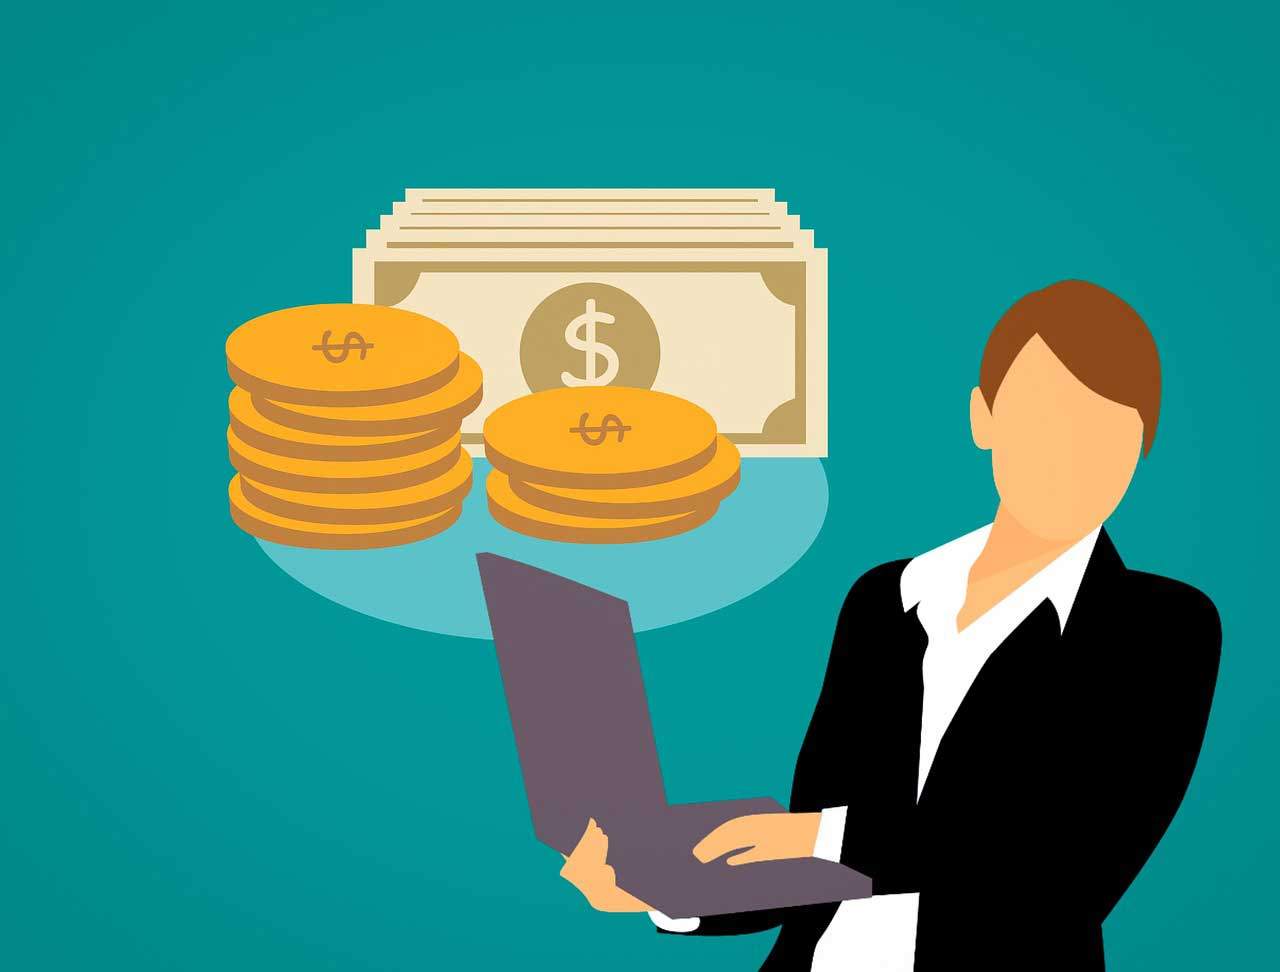 14 Best Affiliate Programs (Top 10 High Paying Affiliate Programs)- realBSG | best affiliate programs | best affiliate programs 2021 | best affiliate programs for beginners | best affiliate programs to make money | best affiliate programs for making money | best affiliate programs for blogs | best affiliate programs for bloggers | best affiliate programs for bloggers | best affiliate programs travel | the best affiliate programs |